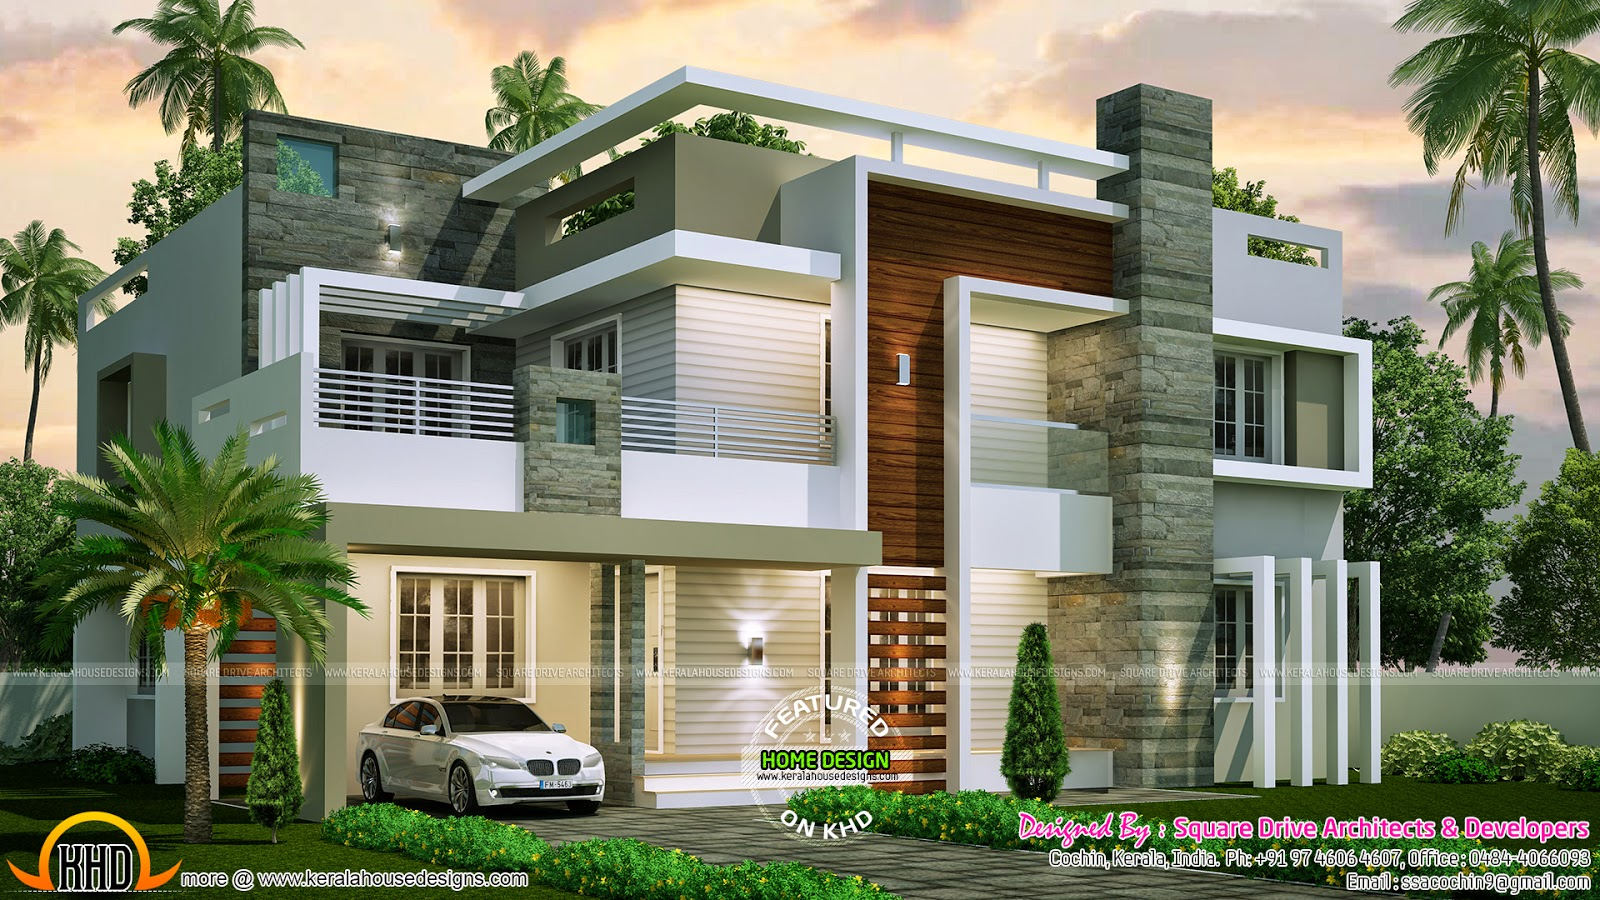 4 bedroom contemporary home design kerala home design and floor plans - Modern home pictures ...